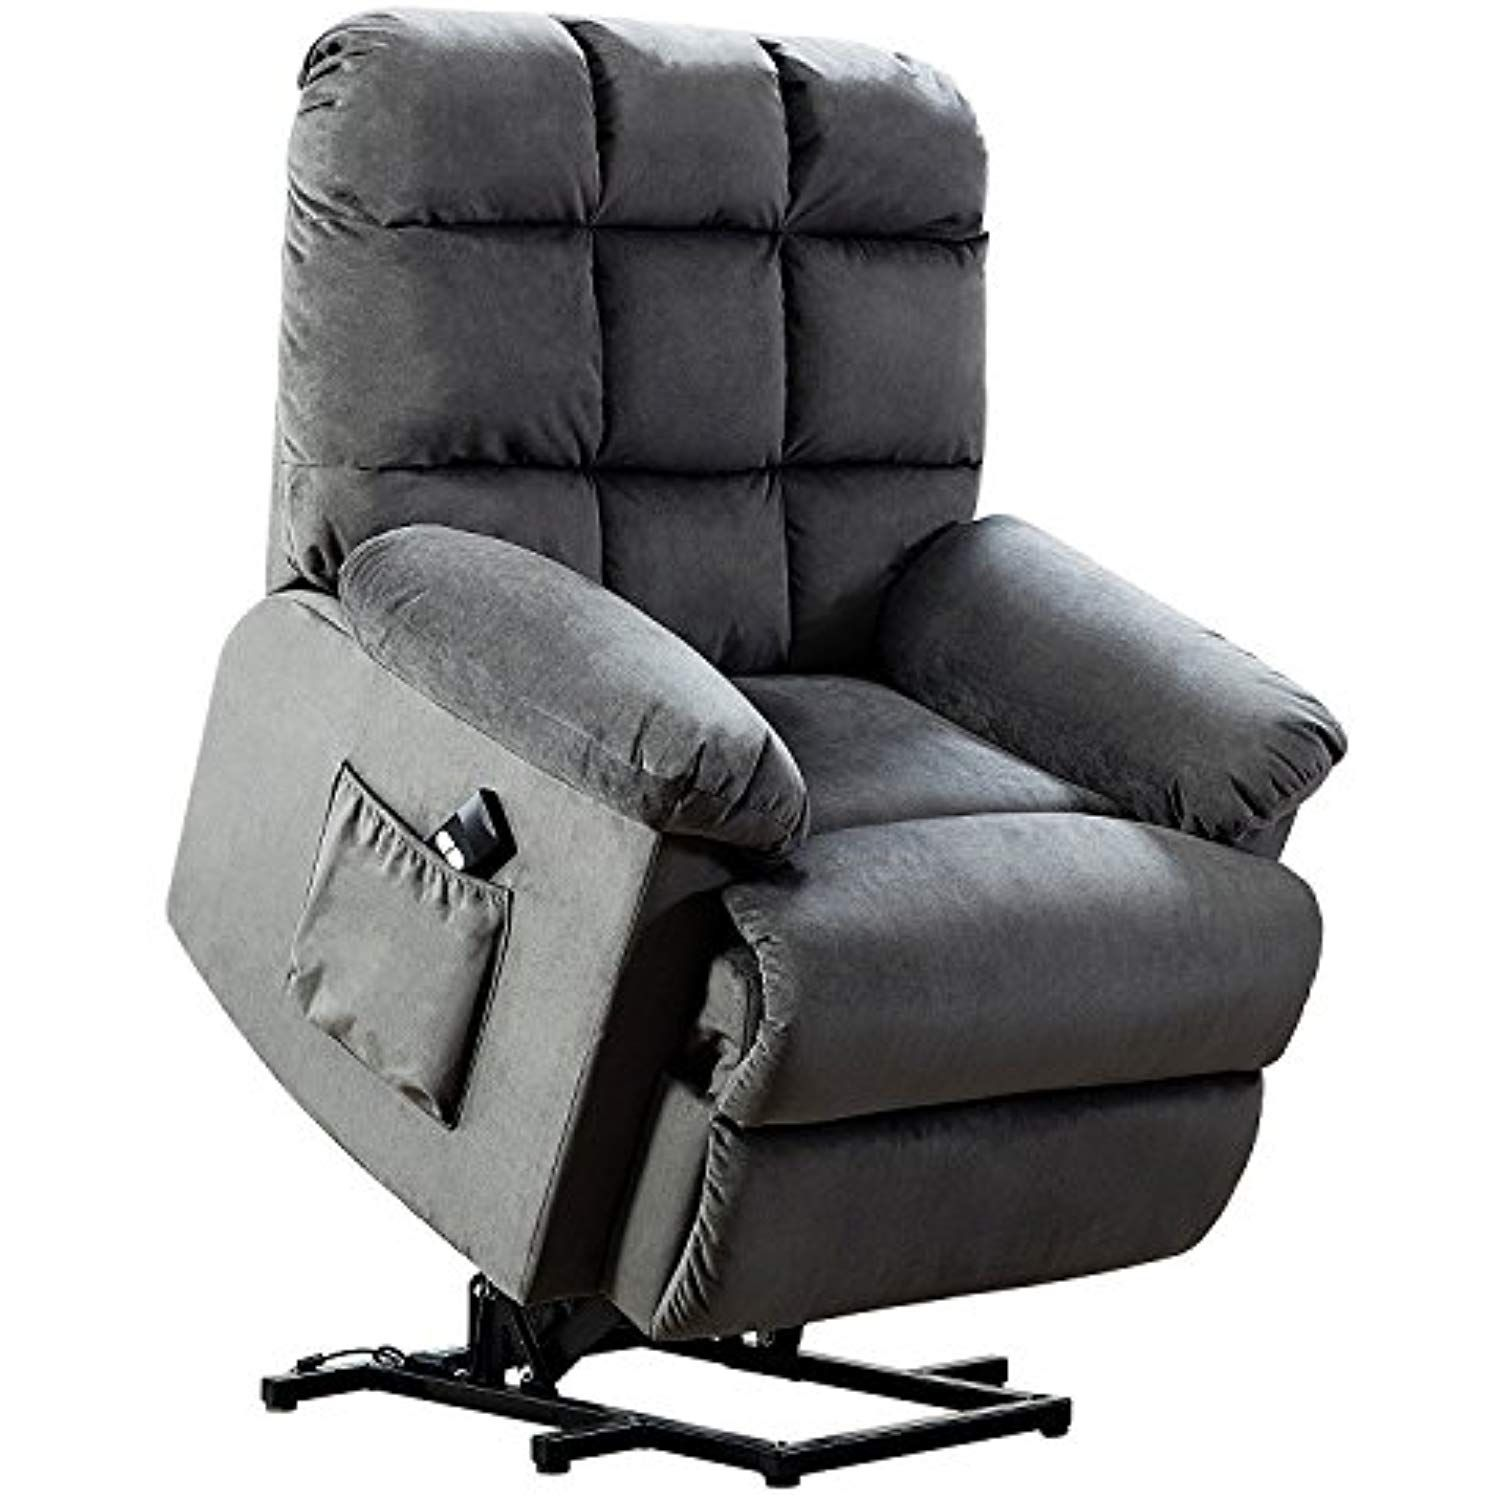 Bonzy lift recliner chair with over stuffed armrest and